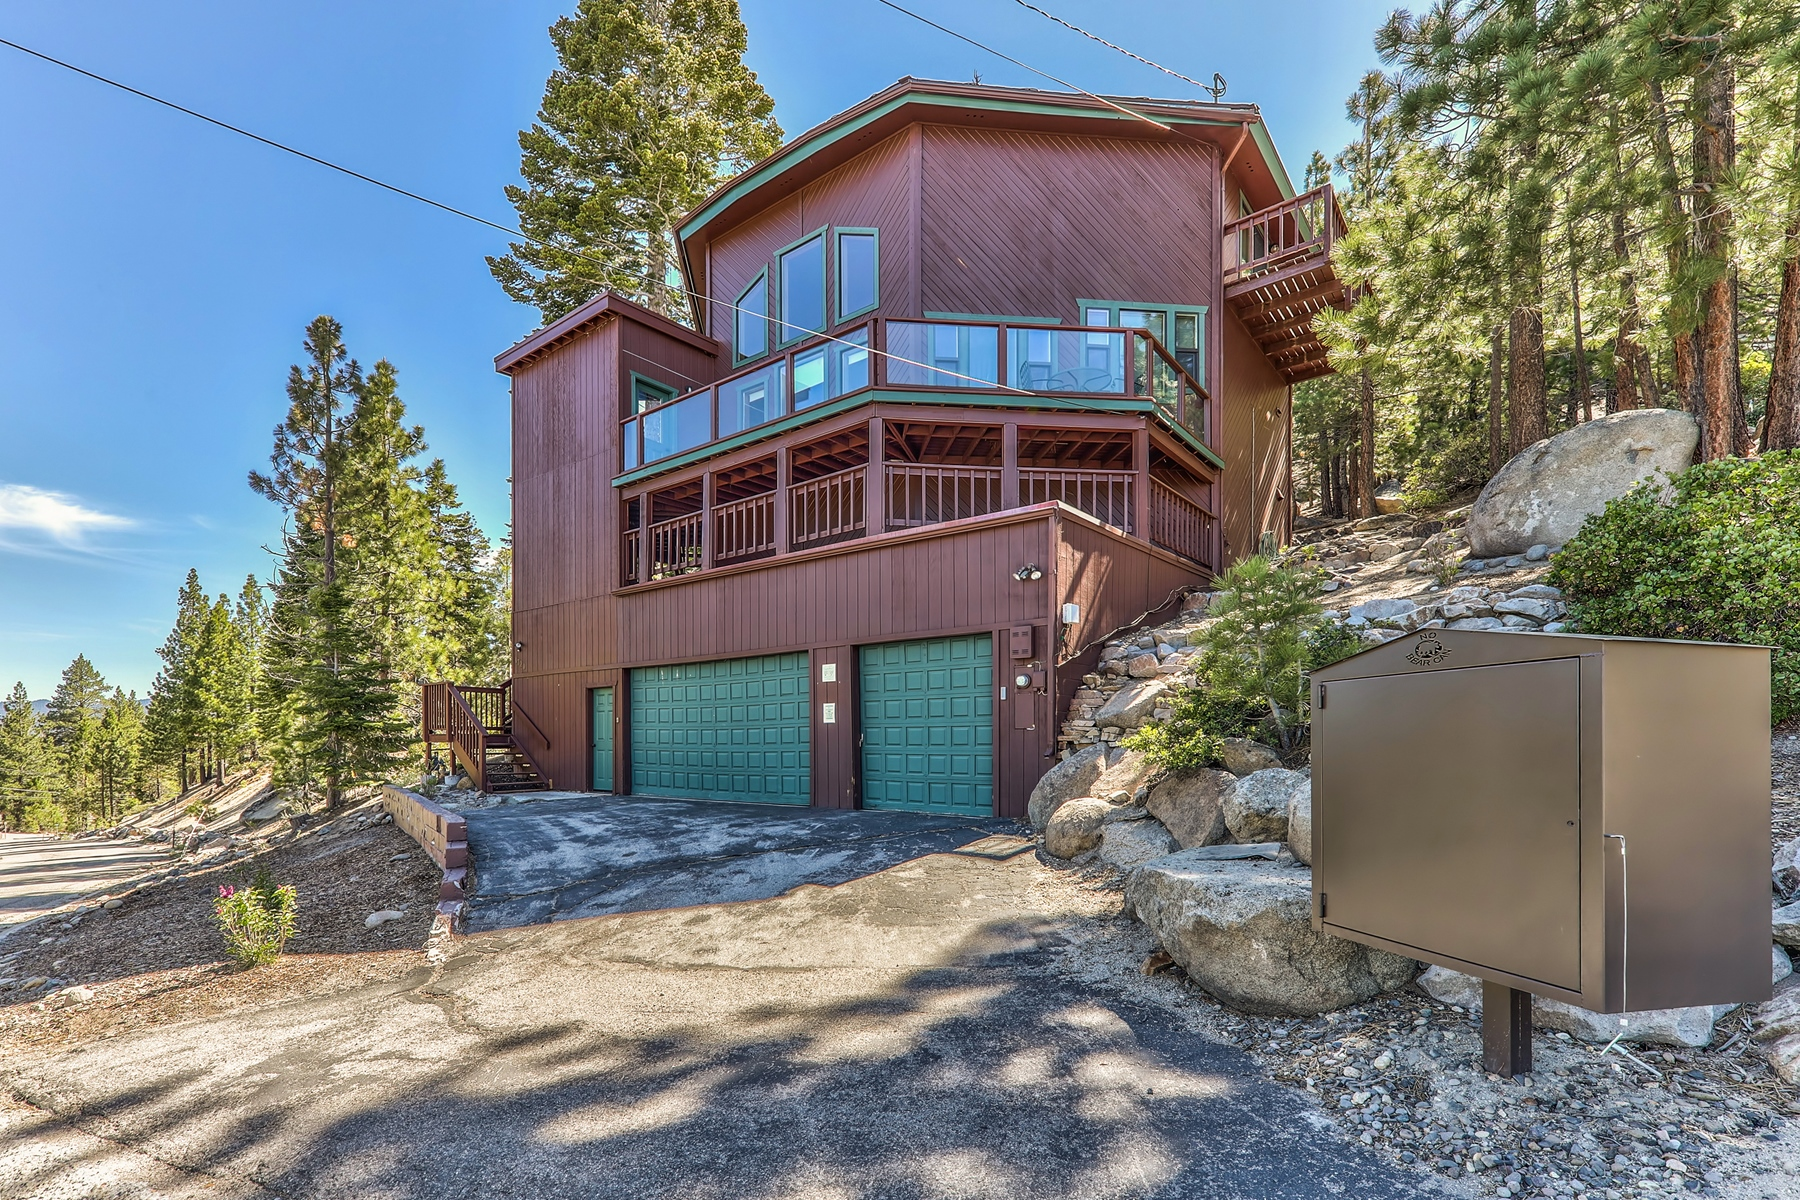 Single Family Homes for Active at 1720 Keller Road, South Lake Tahoe, CA 96150 1720 Keller Road South Lake Tahoe, California 96150 United States